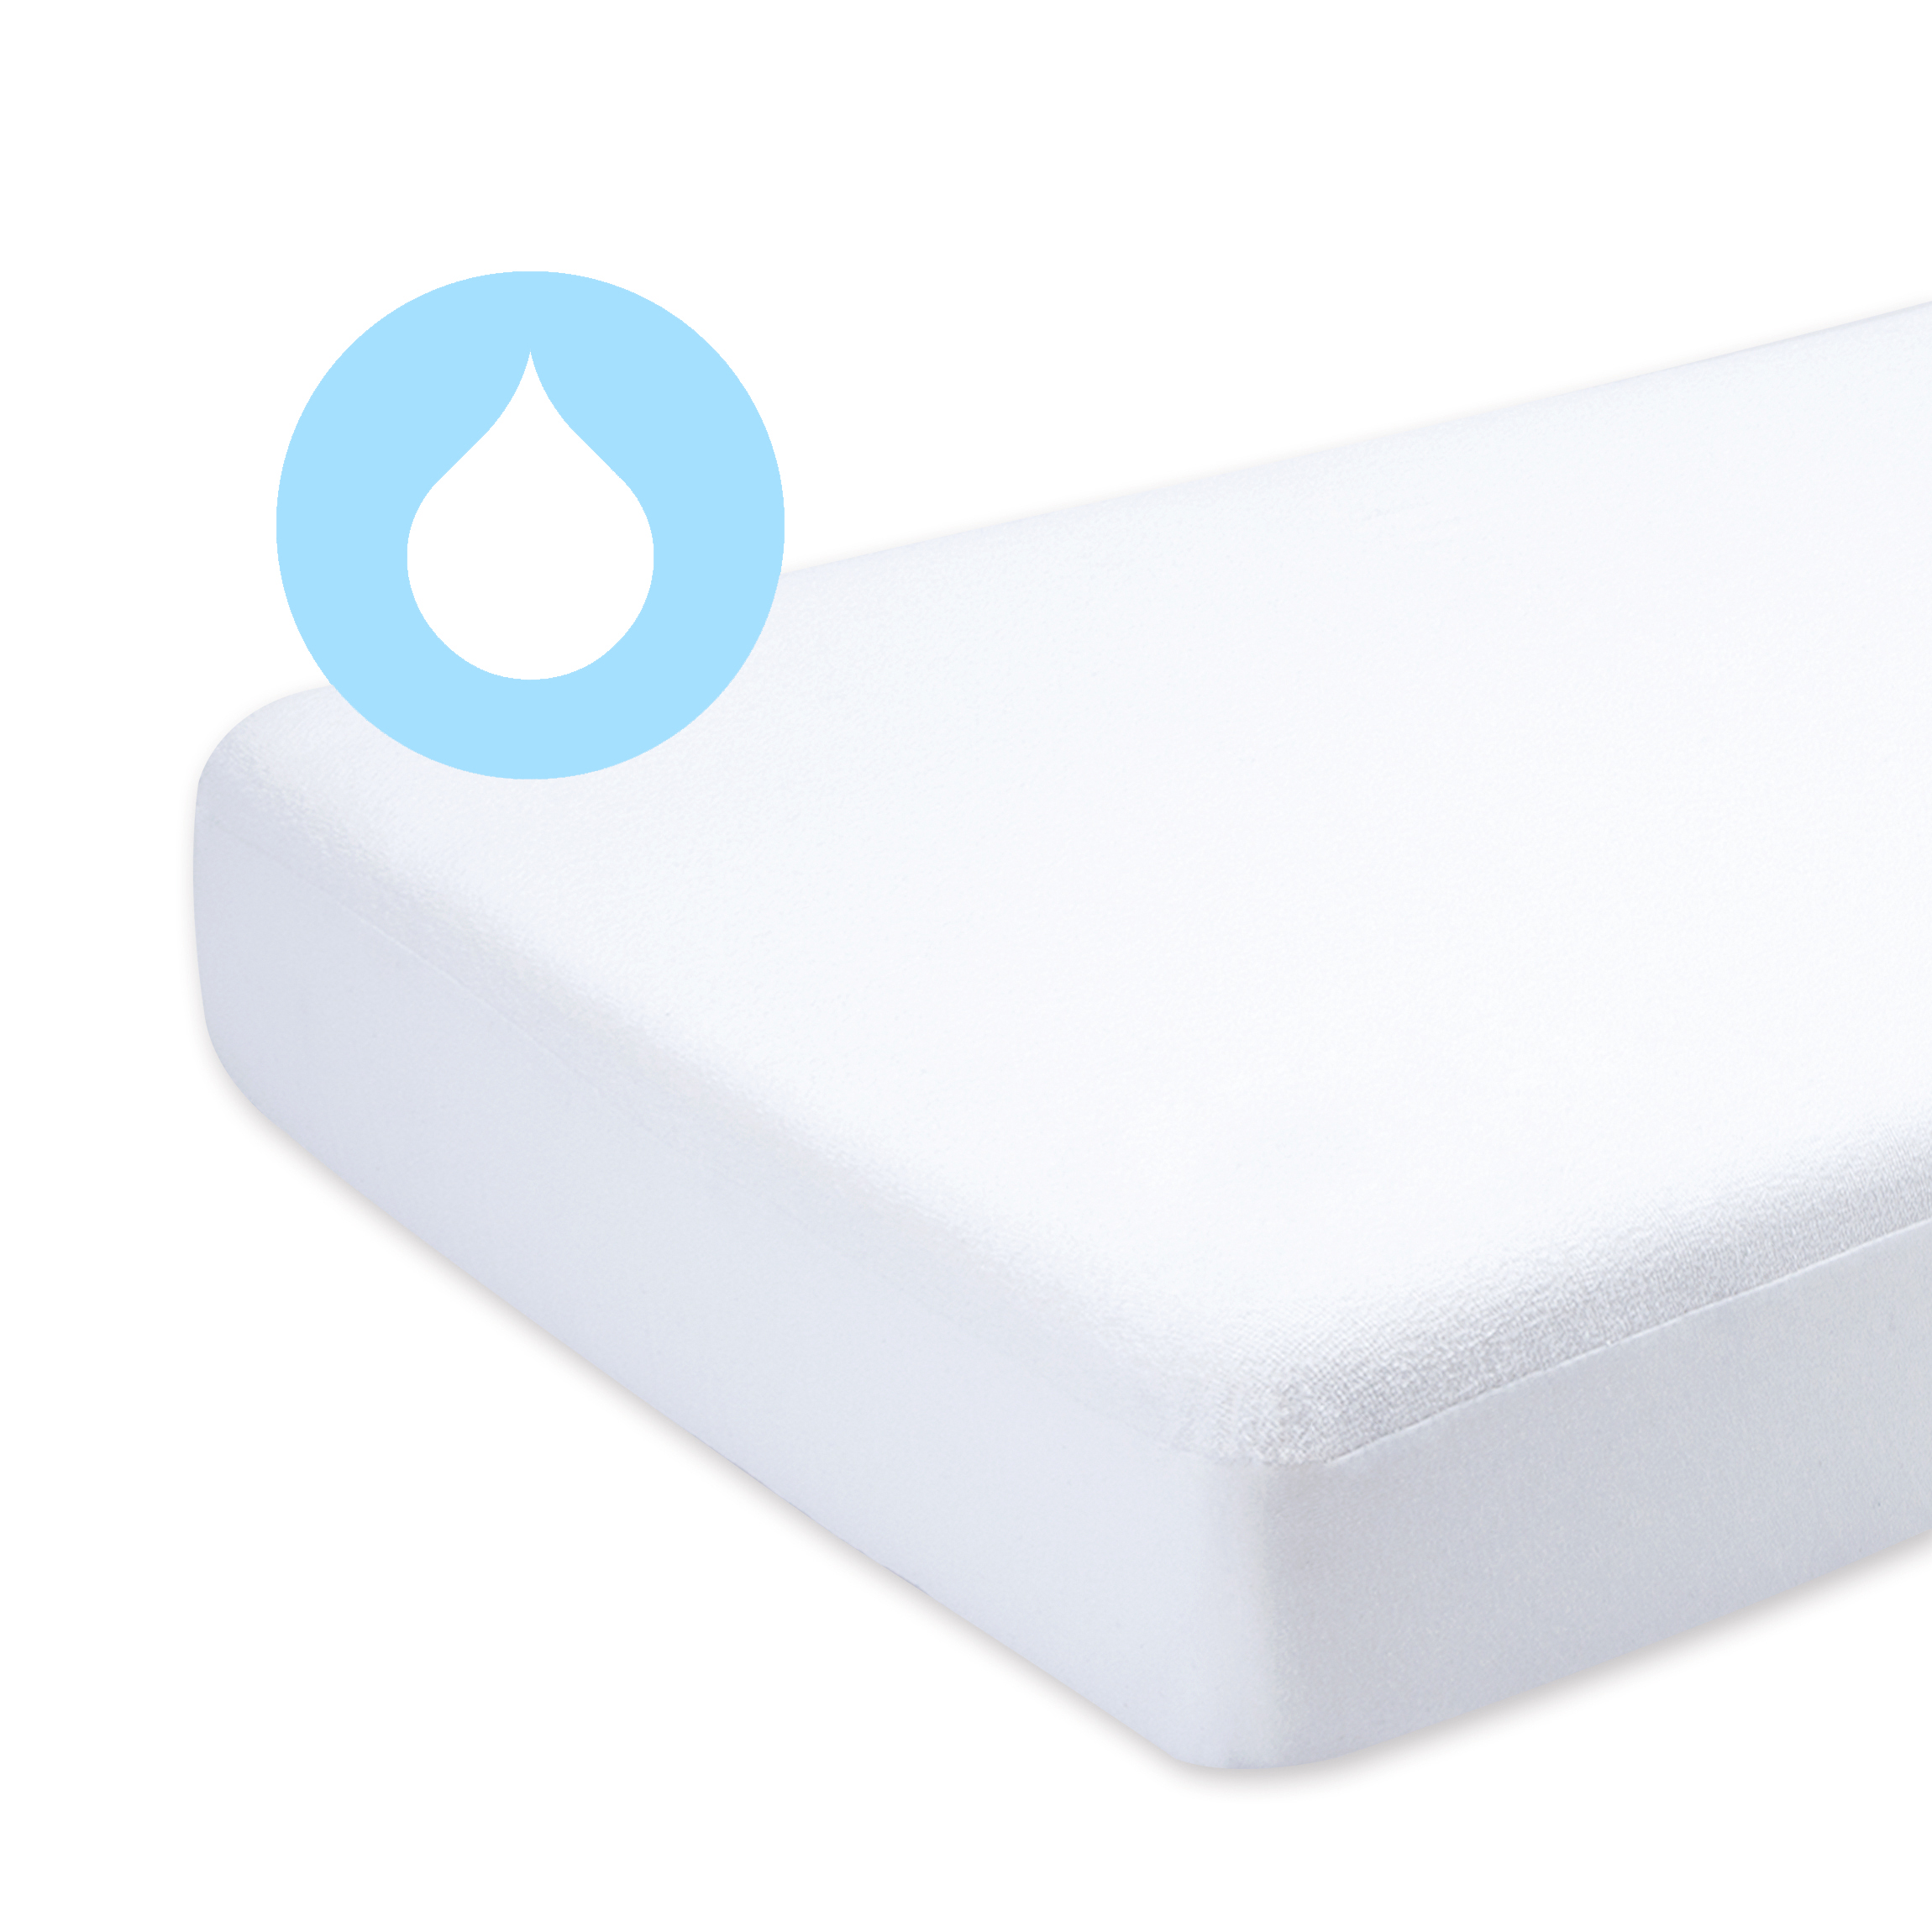 inch mattress compact free product shipping over pad overstock orders la on baby crib